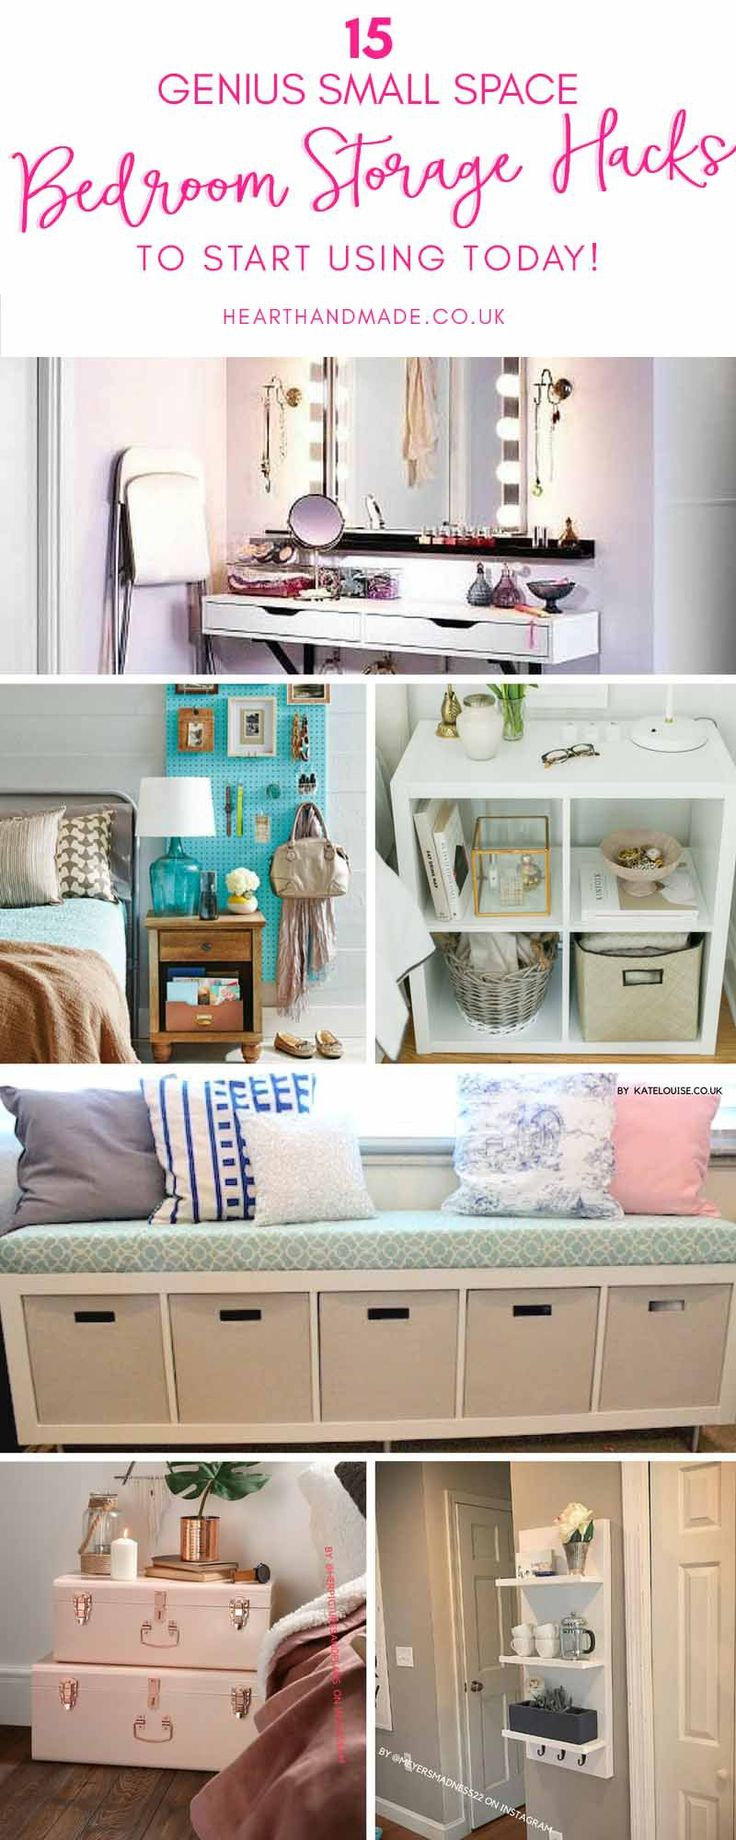 Are you in need of some genius small space bedroom storage ideas? Well, you're in luck! Click through to see 15 unexpected Ideas For Bedroom Storage: